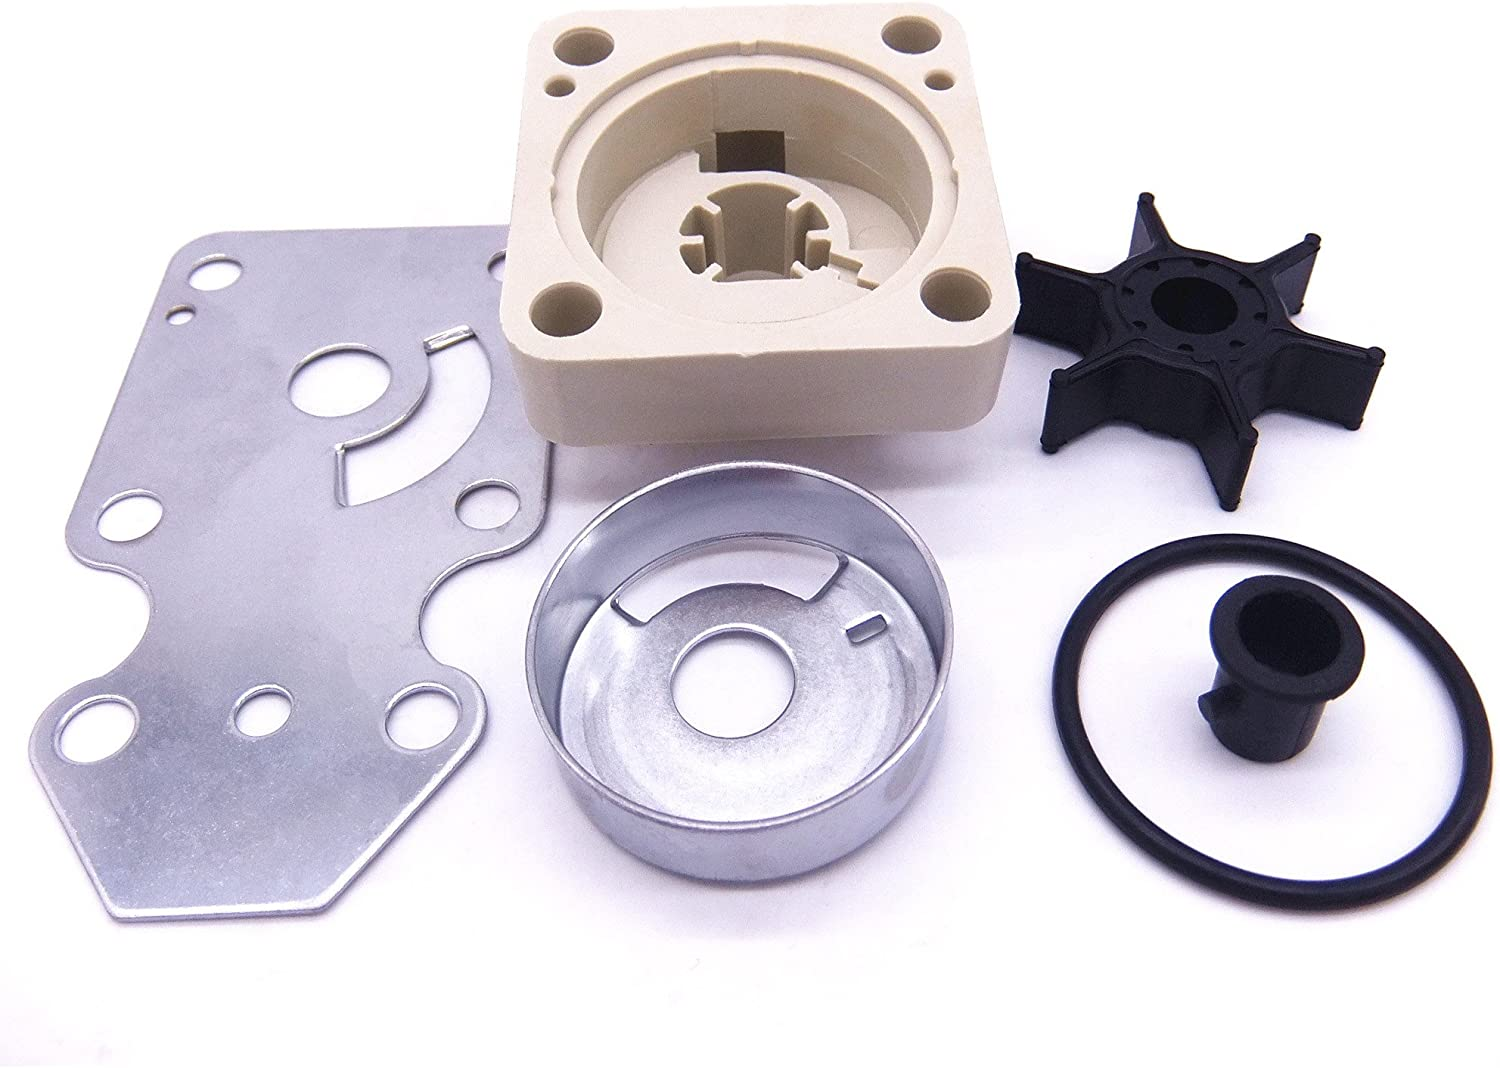 SouthMarine 63V-W0078-01 18-3433 Complete Water Pump Kit Parts for Yamaha/Parsun F15 15hp 4-Stroke Outboard Motor